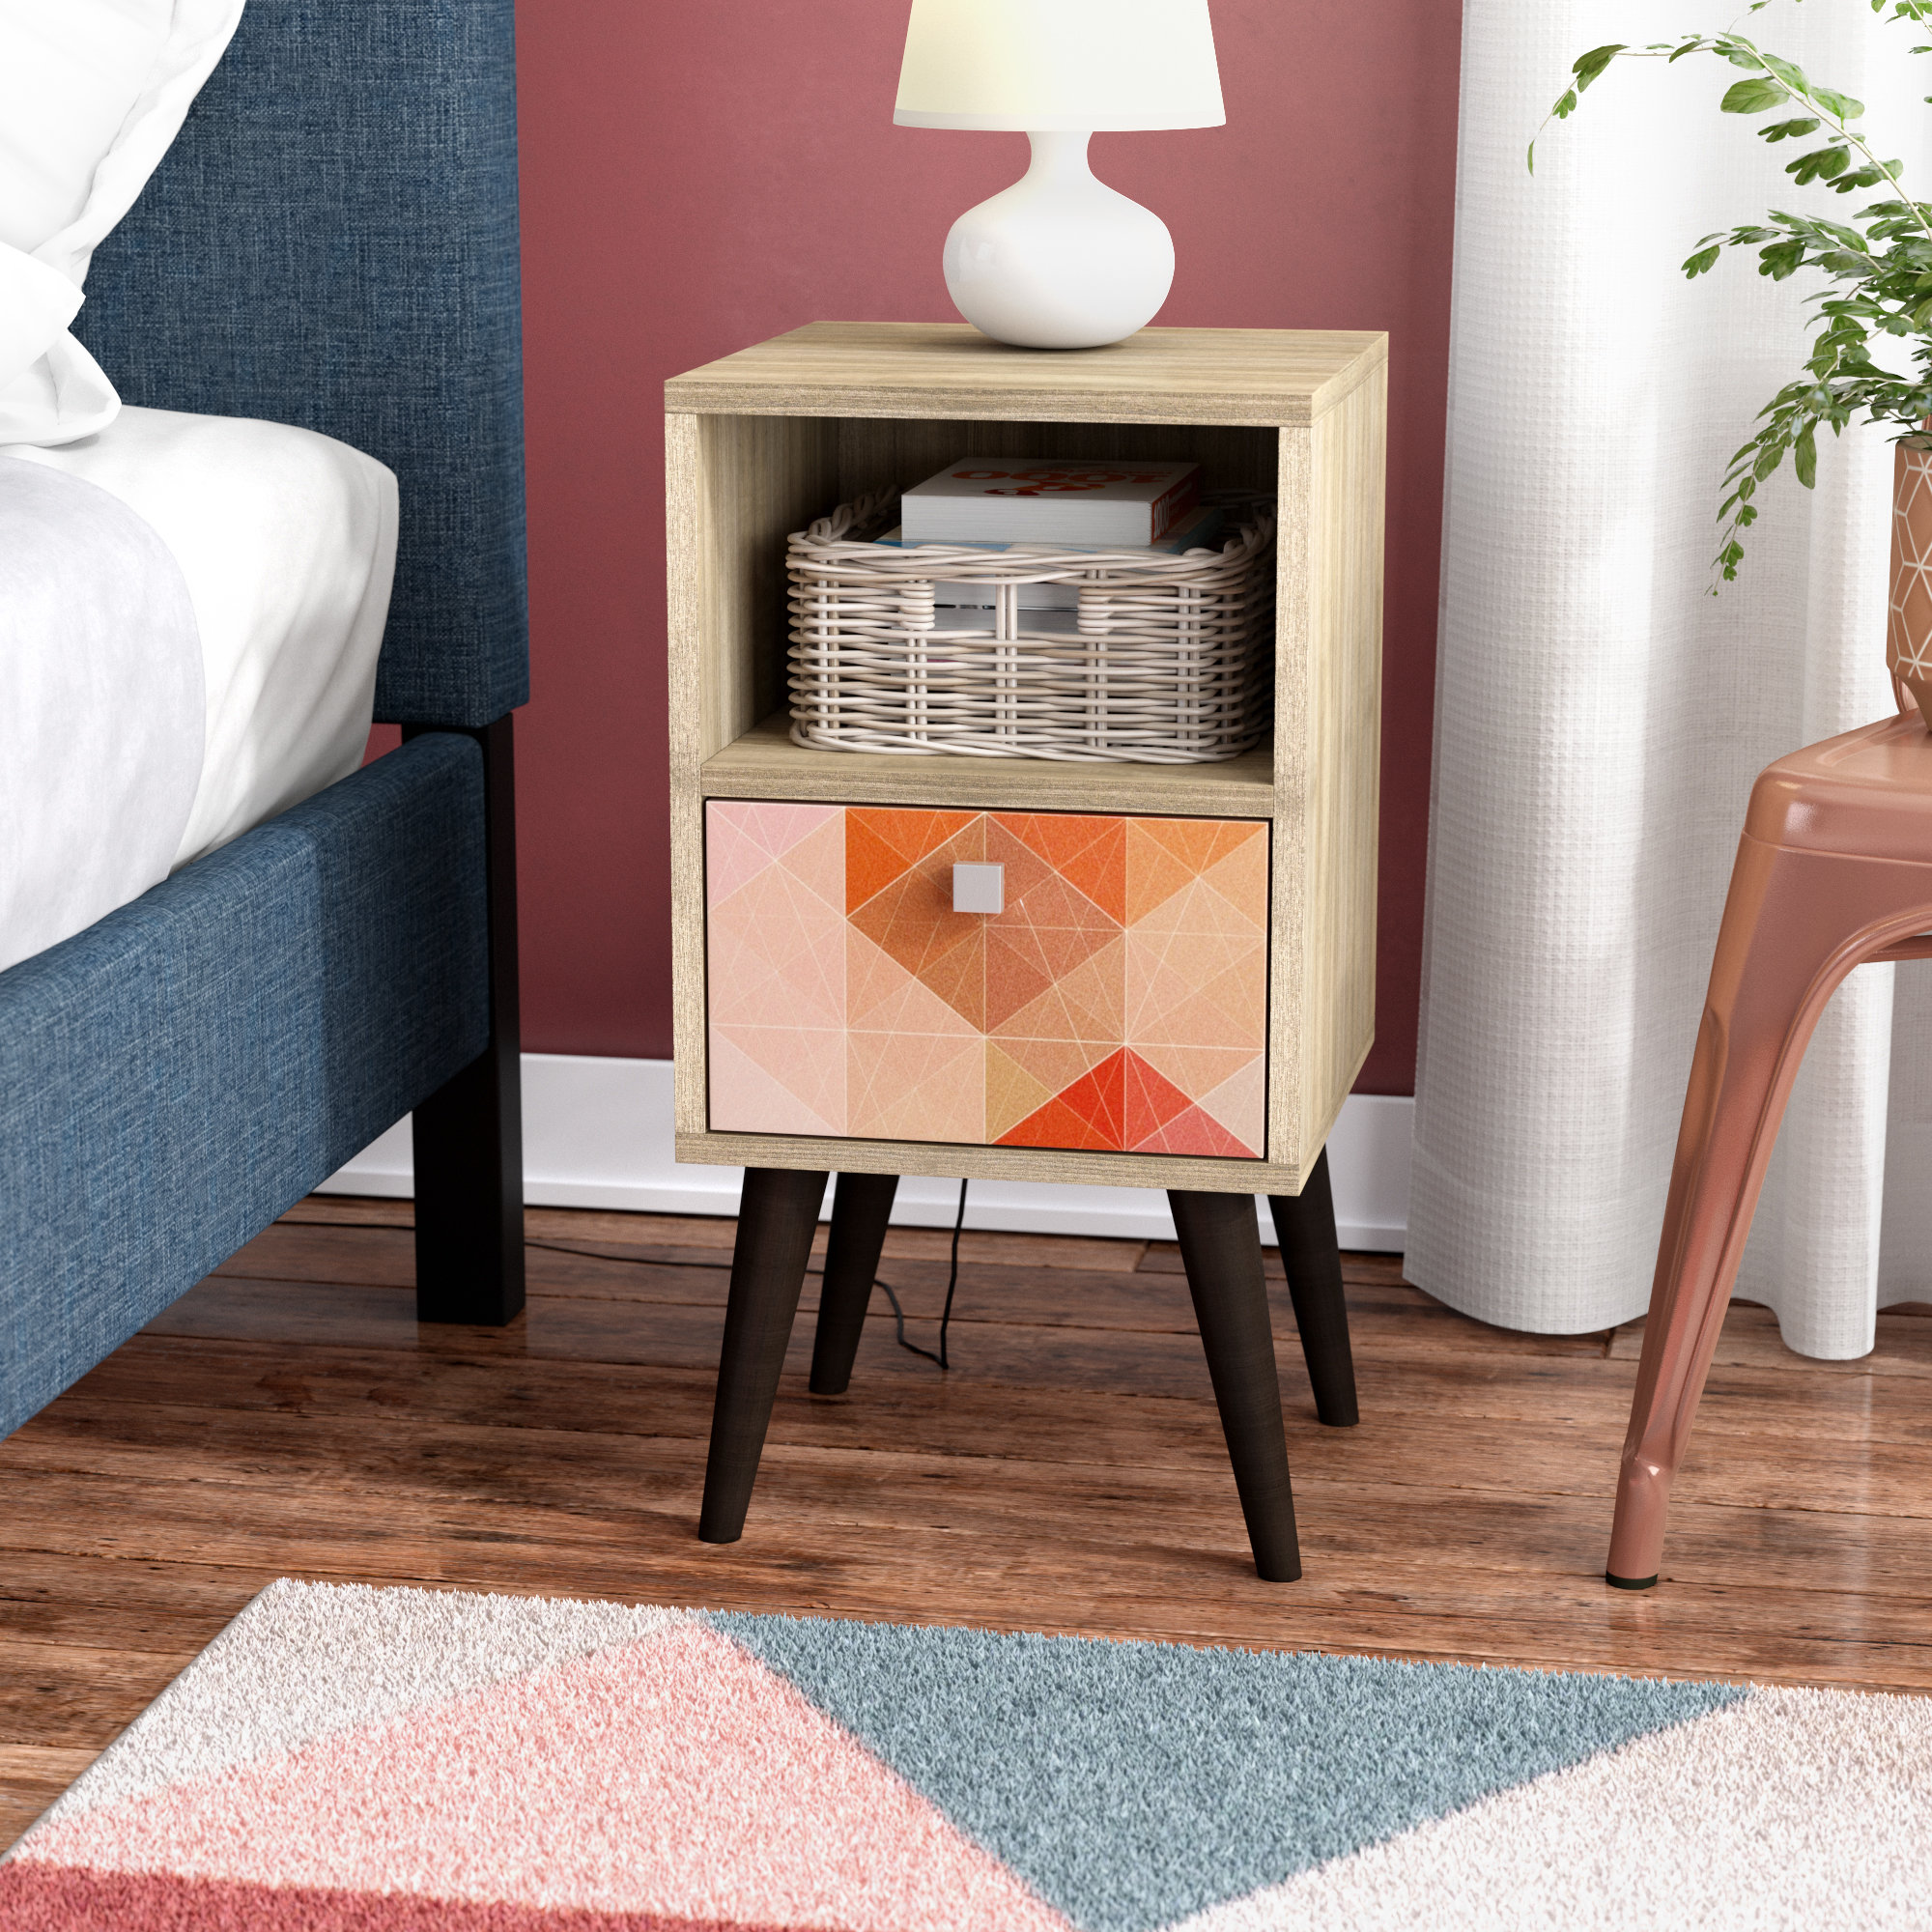 small end tables you love althea table patchen accent winsome wood timber night stand dark blue hairpin coffee ashley furniture mattress west elm art patio depot turquoise chair